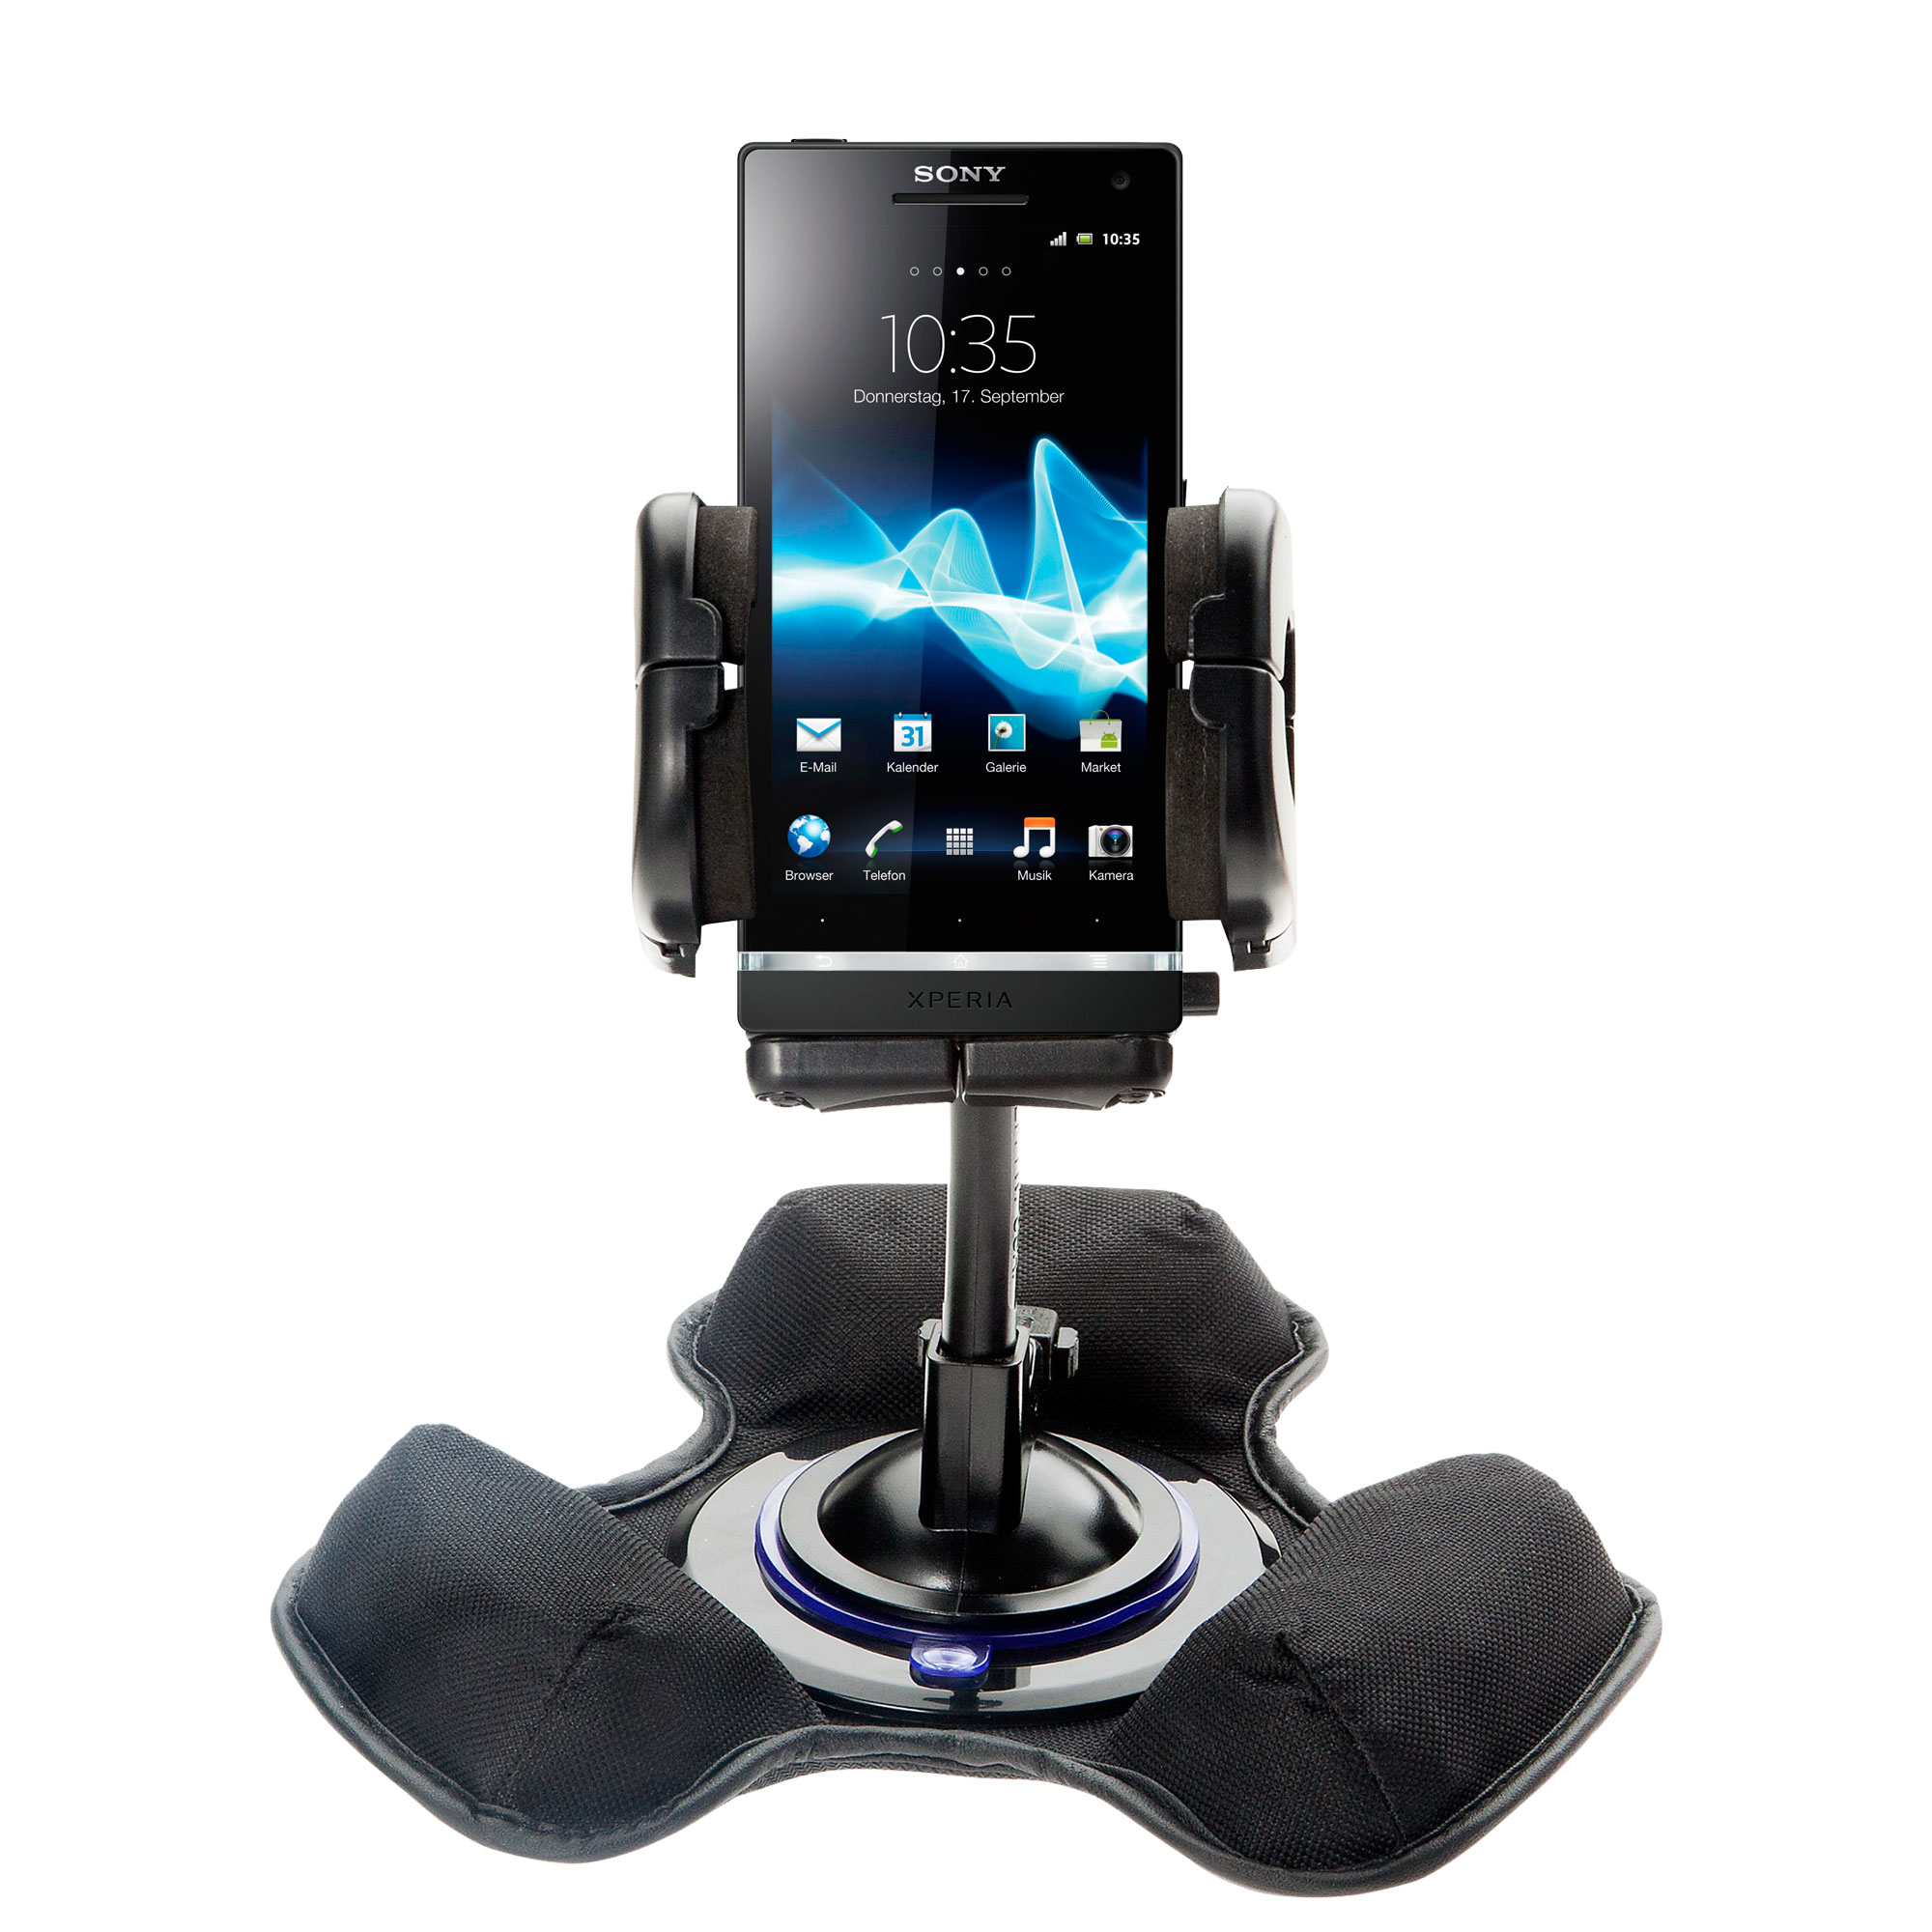 Car / Truck Vehicle Holder Mounting System for Sony Ericsson Xperia S Includes Unique Flexible Windshield Suction and Universal Dashboard Mount Options